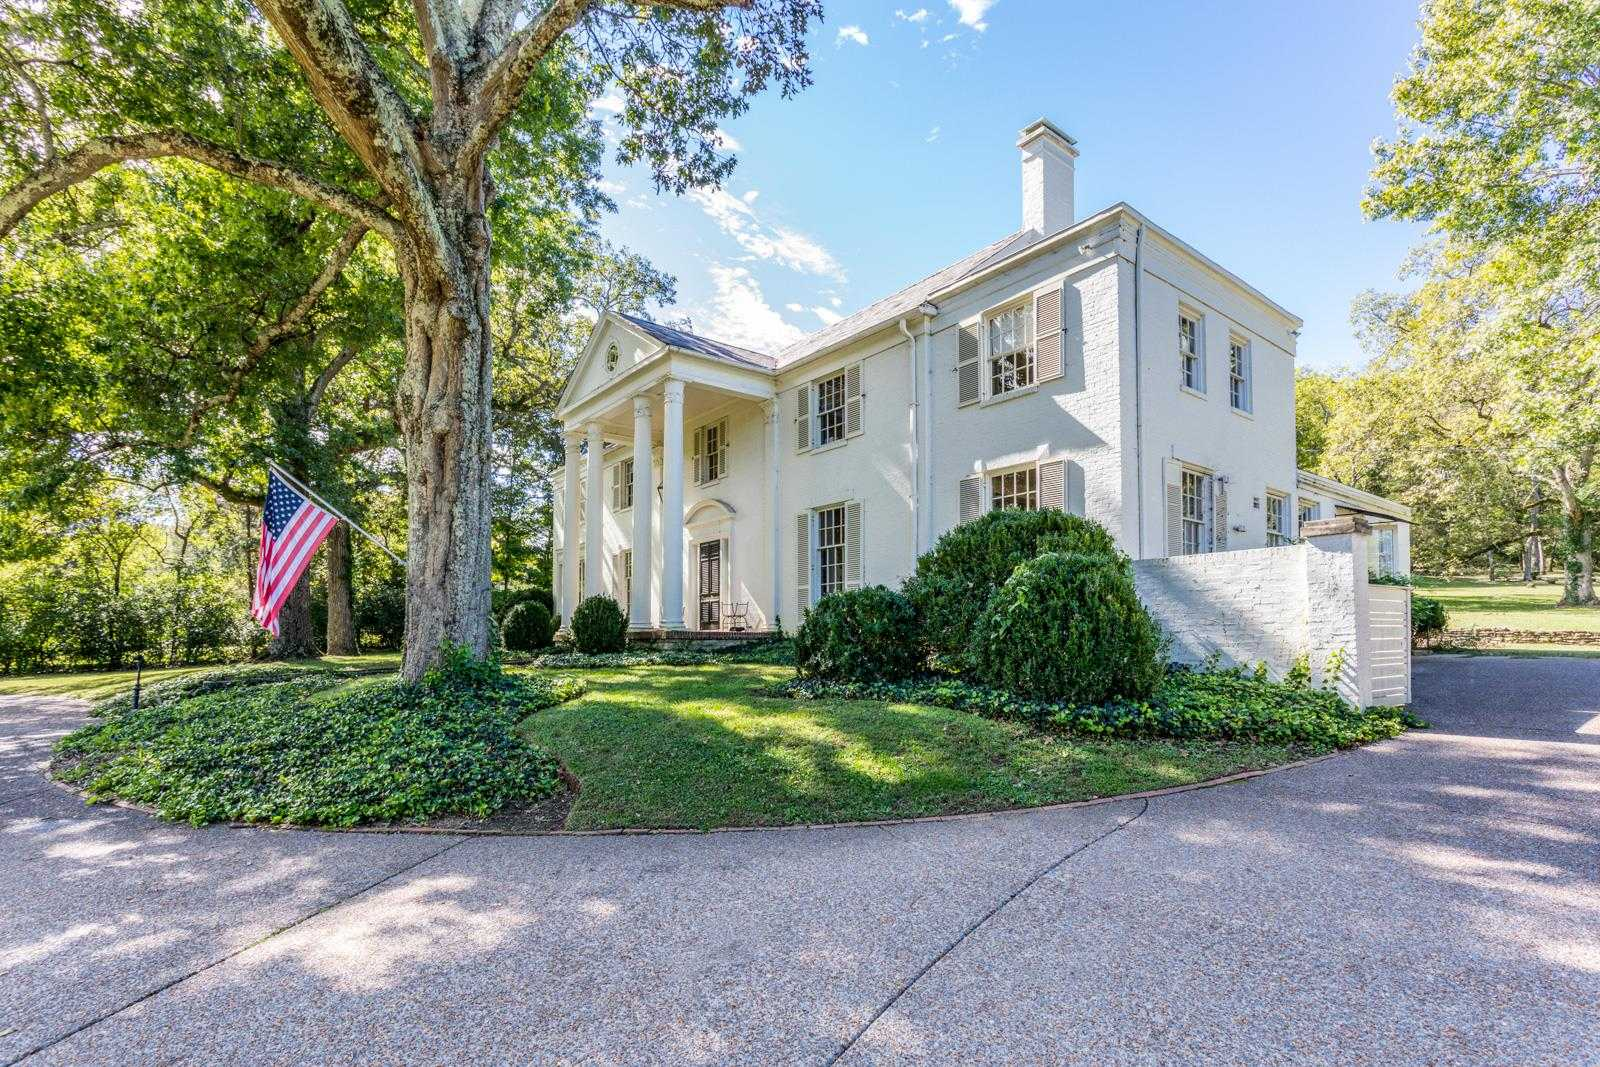 $2,950,000 - 4Br/3Ba -  for Sale in Forest Hills 4.7 Acres, Nashville